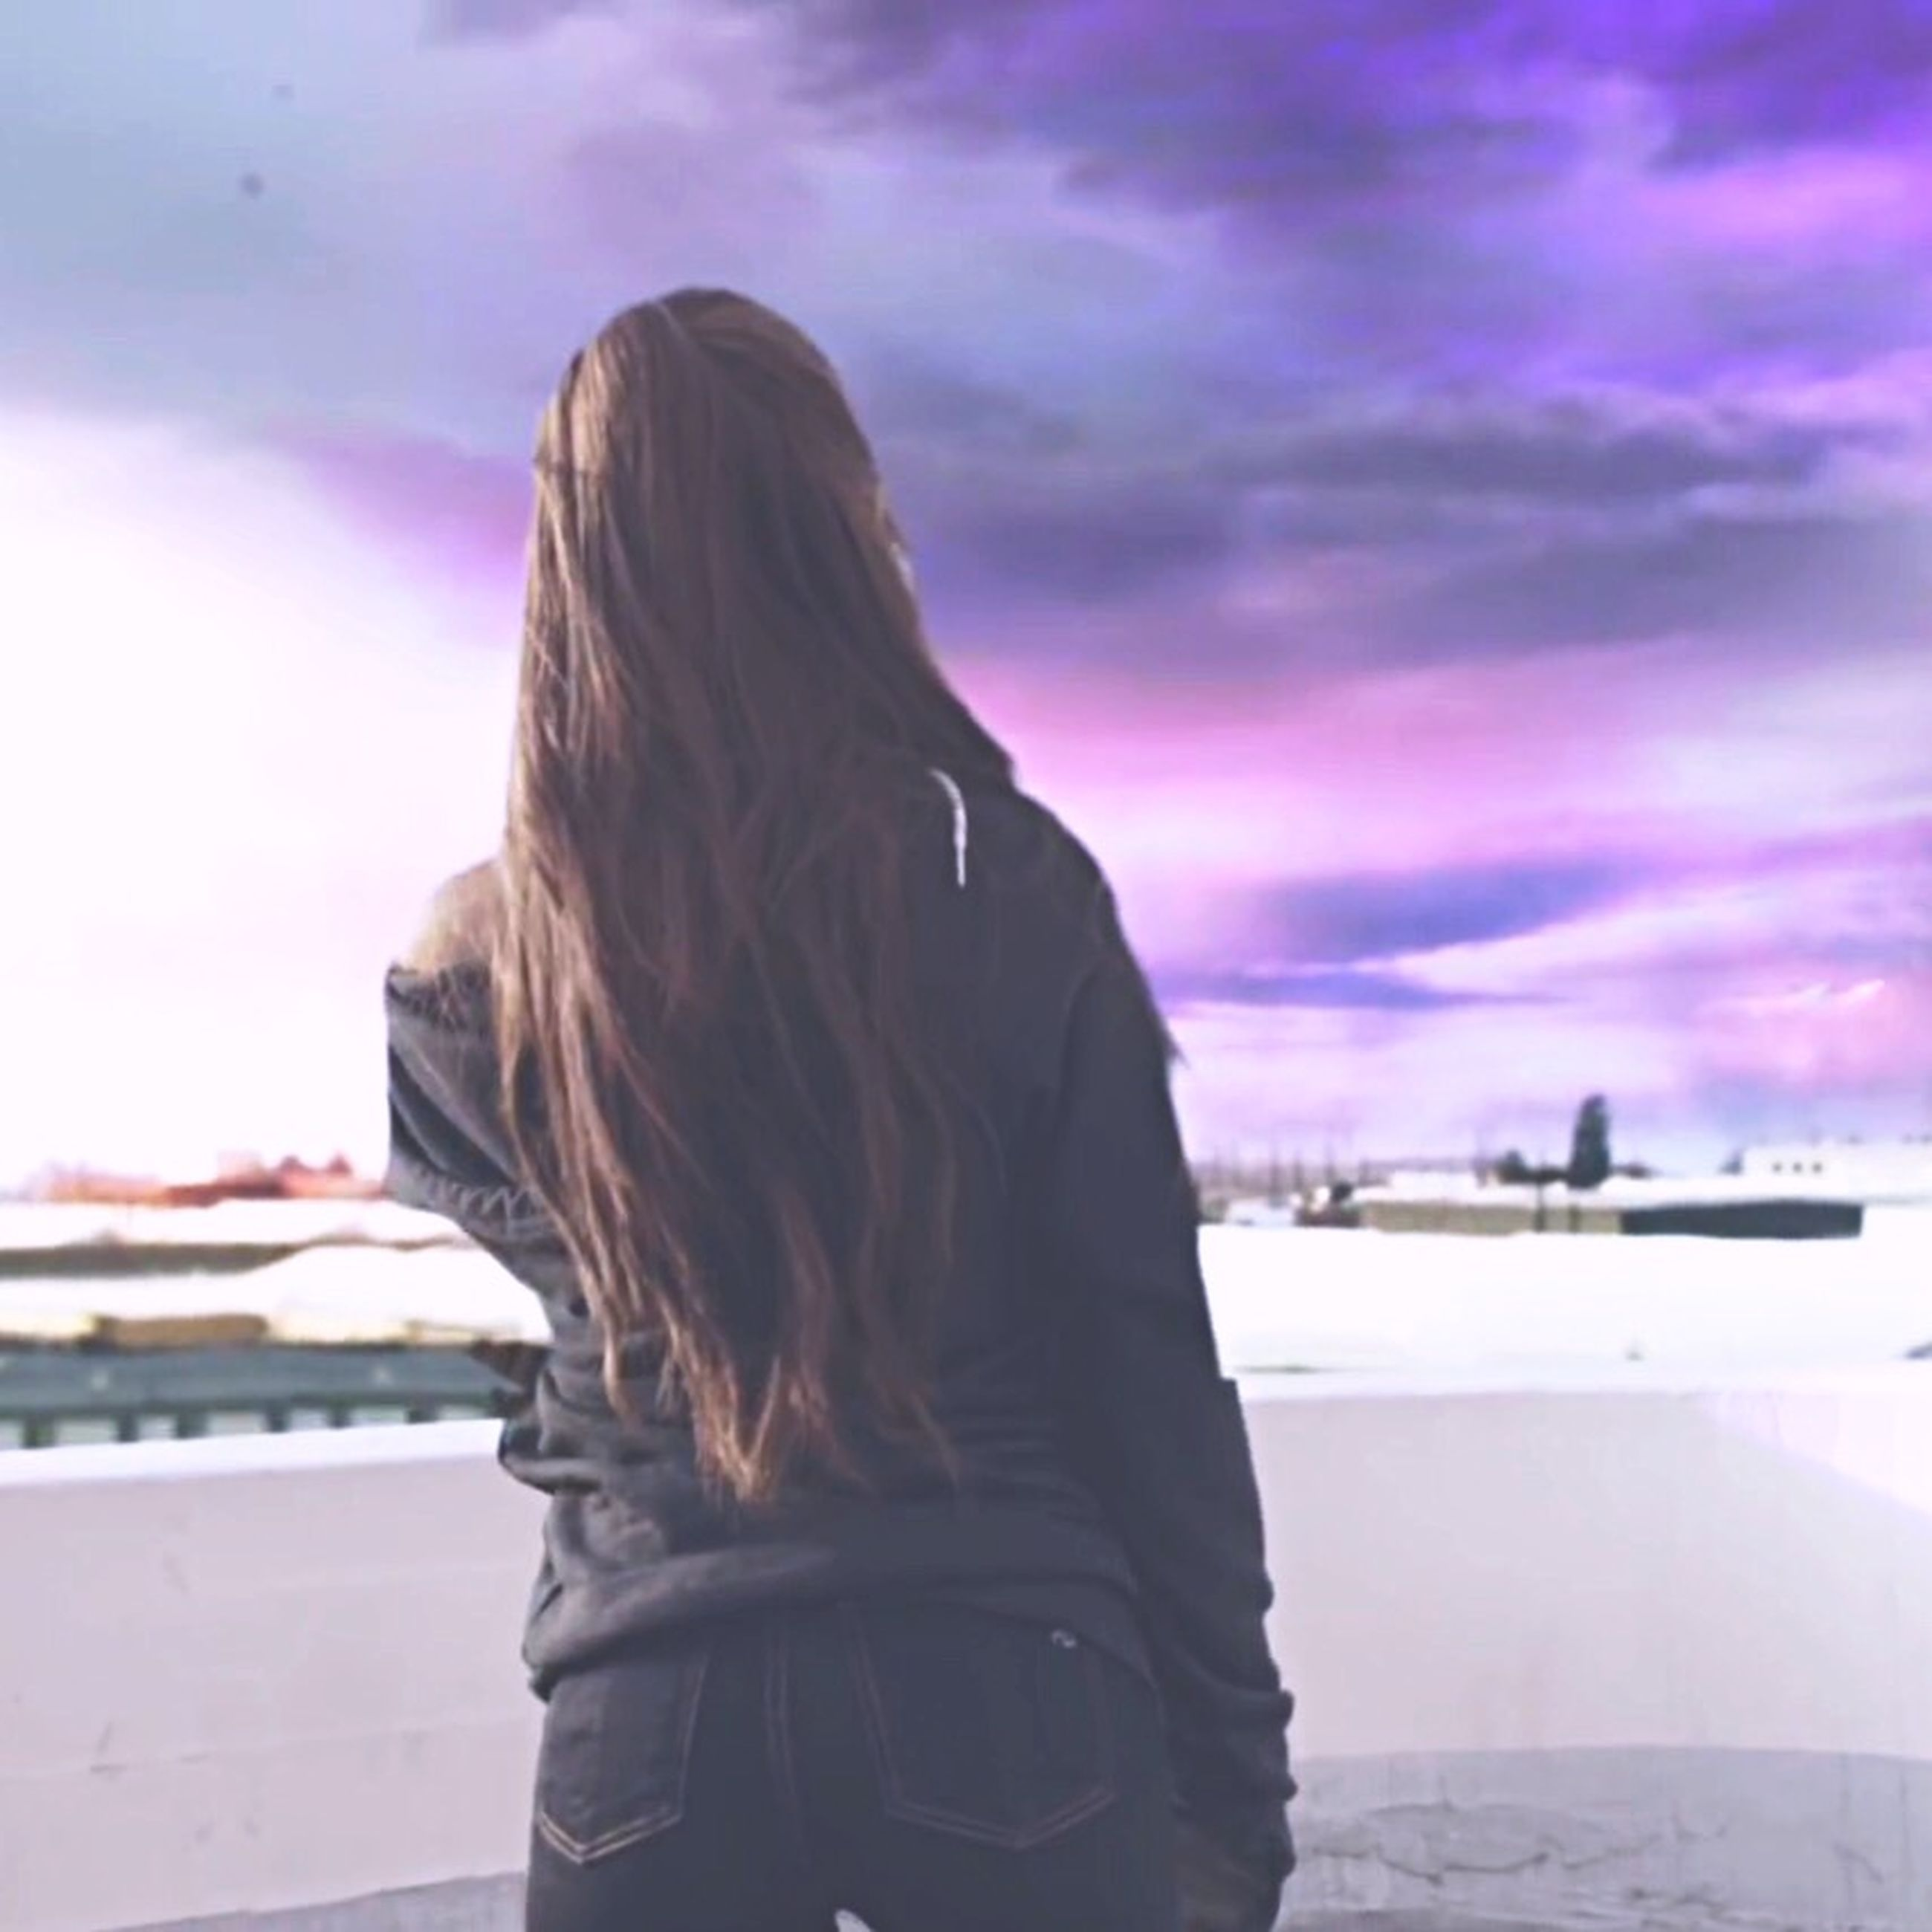 lifestyles, rear view, sky, long hair, waist up, headshot, leisure activity, standing, person, cloud - sky, casual clothing, focus on foreground, young women, building exterior, side view, three quarter length, built structure, architecture